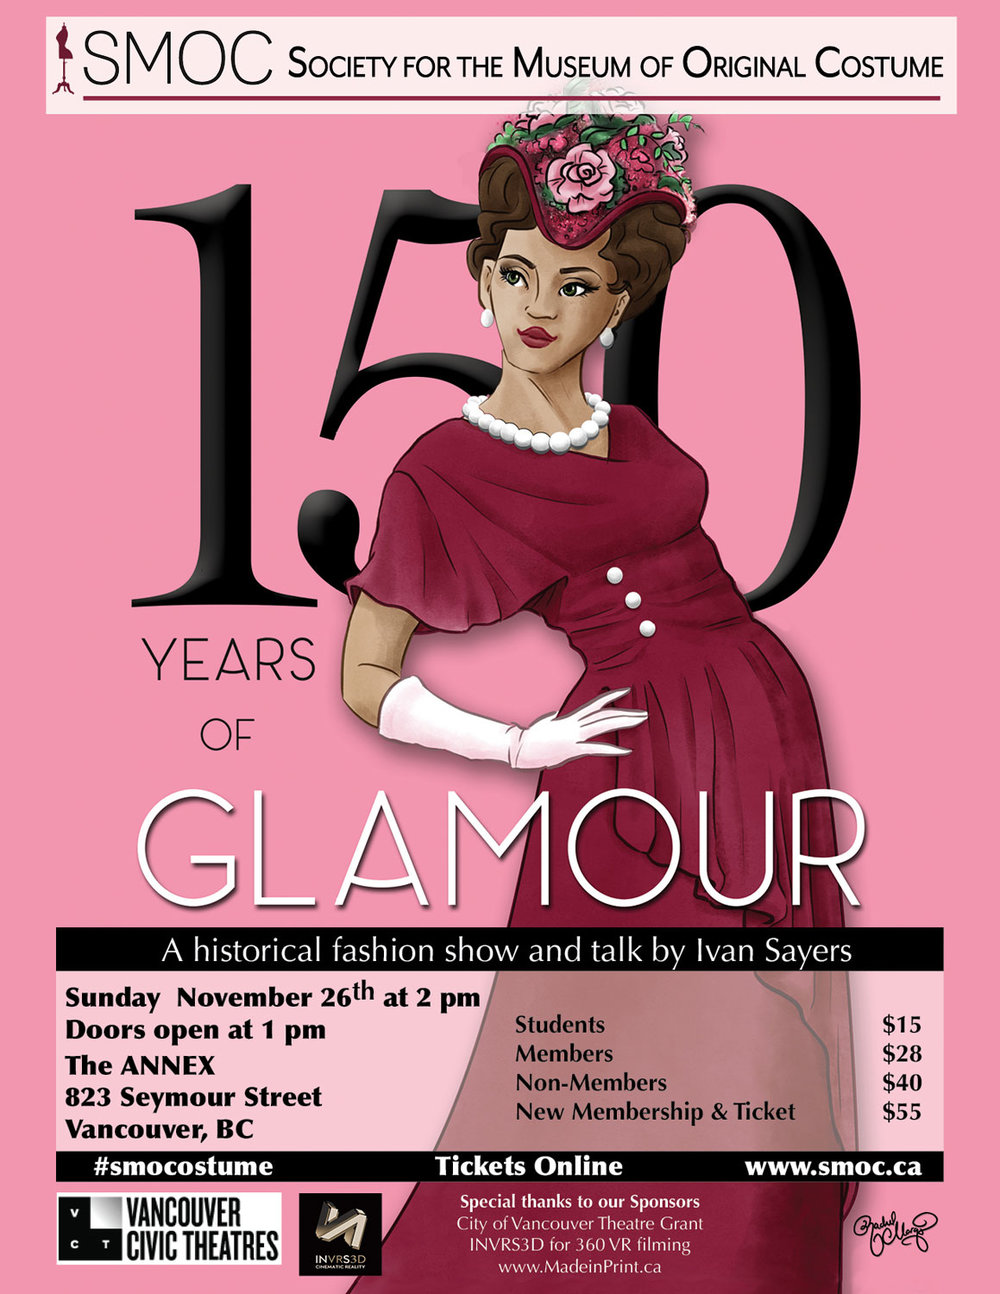 150-Years-of-Glamour_1500.jpg